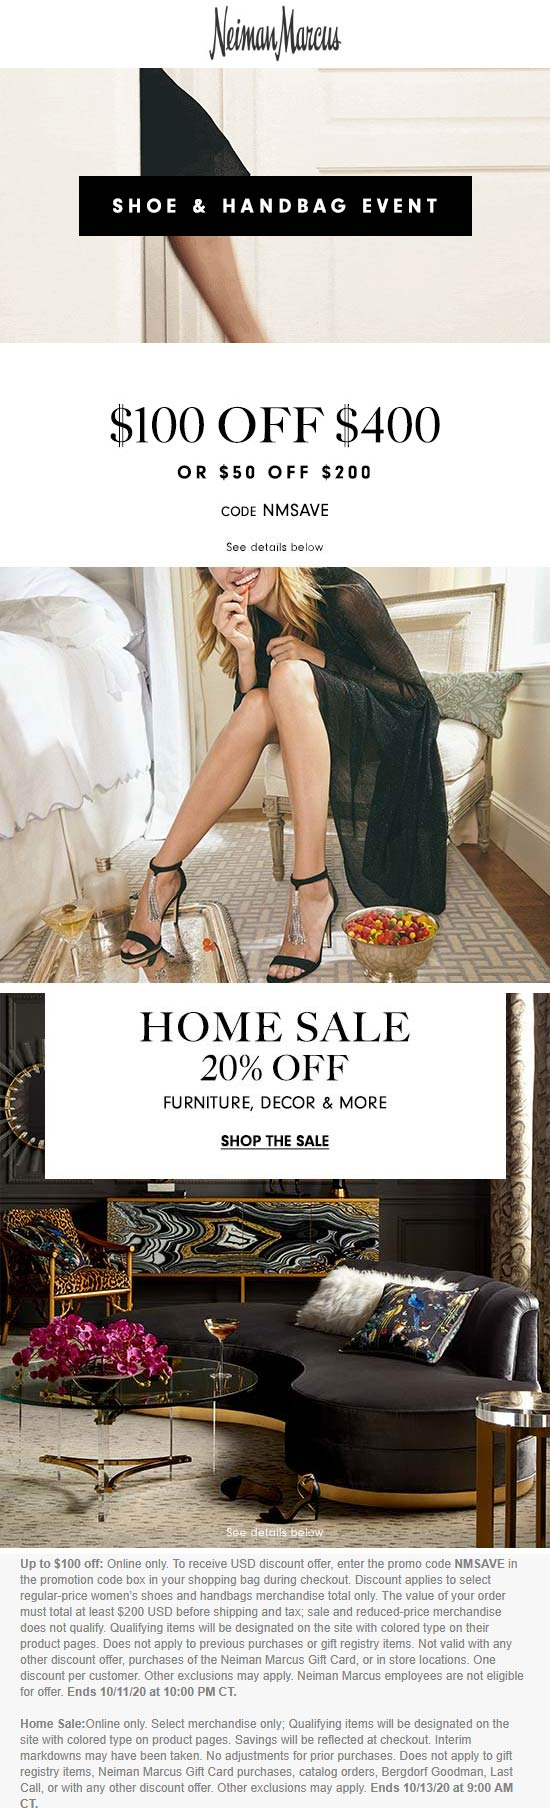 $50 off $200, 20% off home & more today at Neiman Marcus via promo code NMSAVE #neimanmarcus